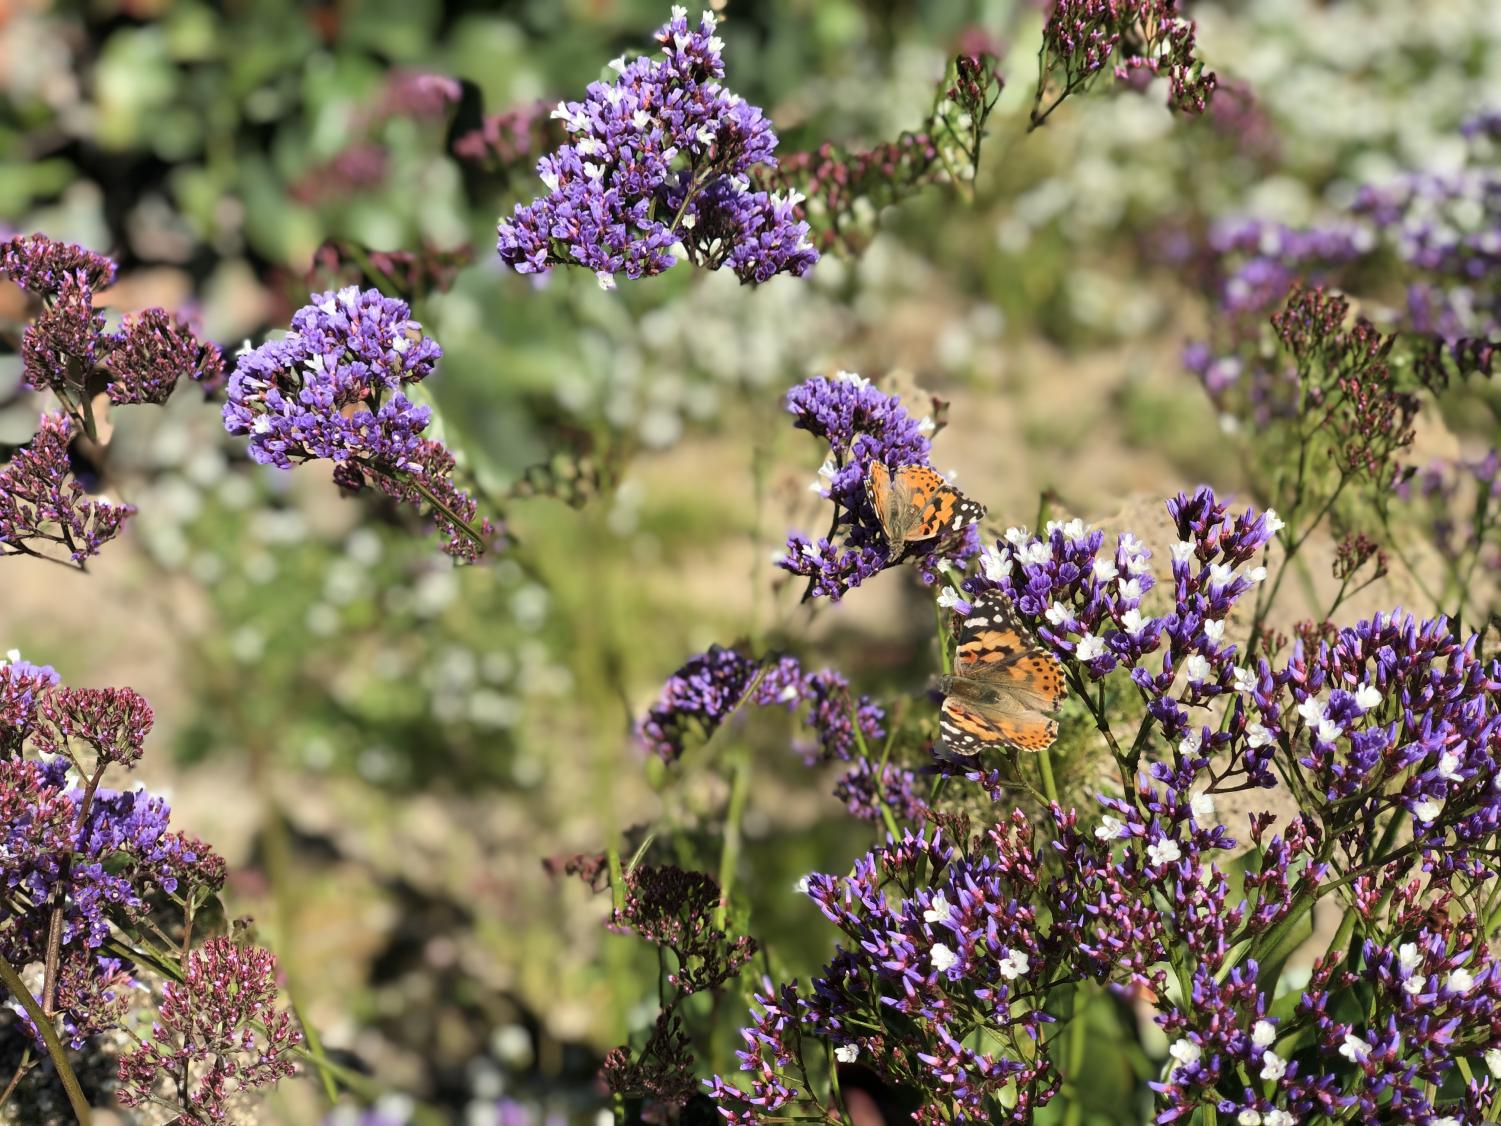 Two painted ladies frolic amongst the vibrant purple flowers in Upland, CA.